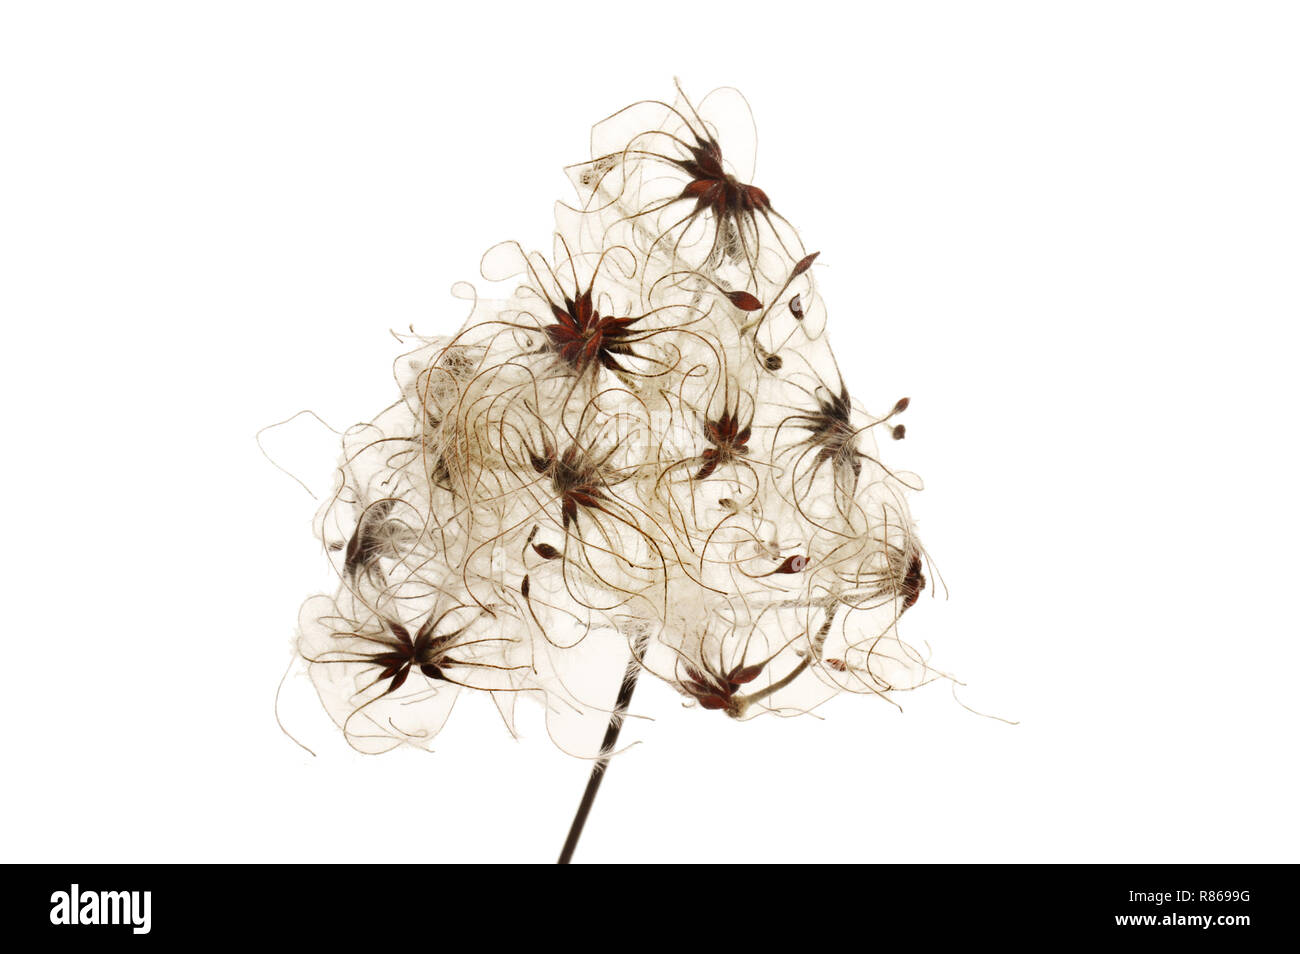 Wild clematis, Clematis vitalba, seeds isolated against white - Stock Image